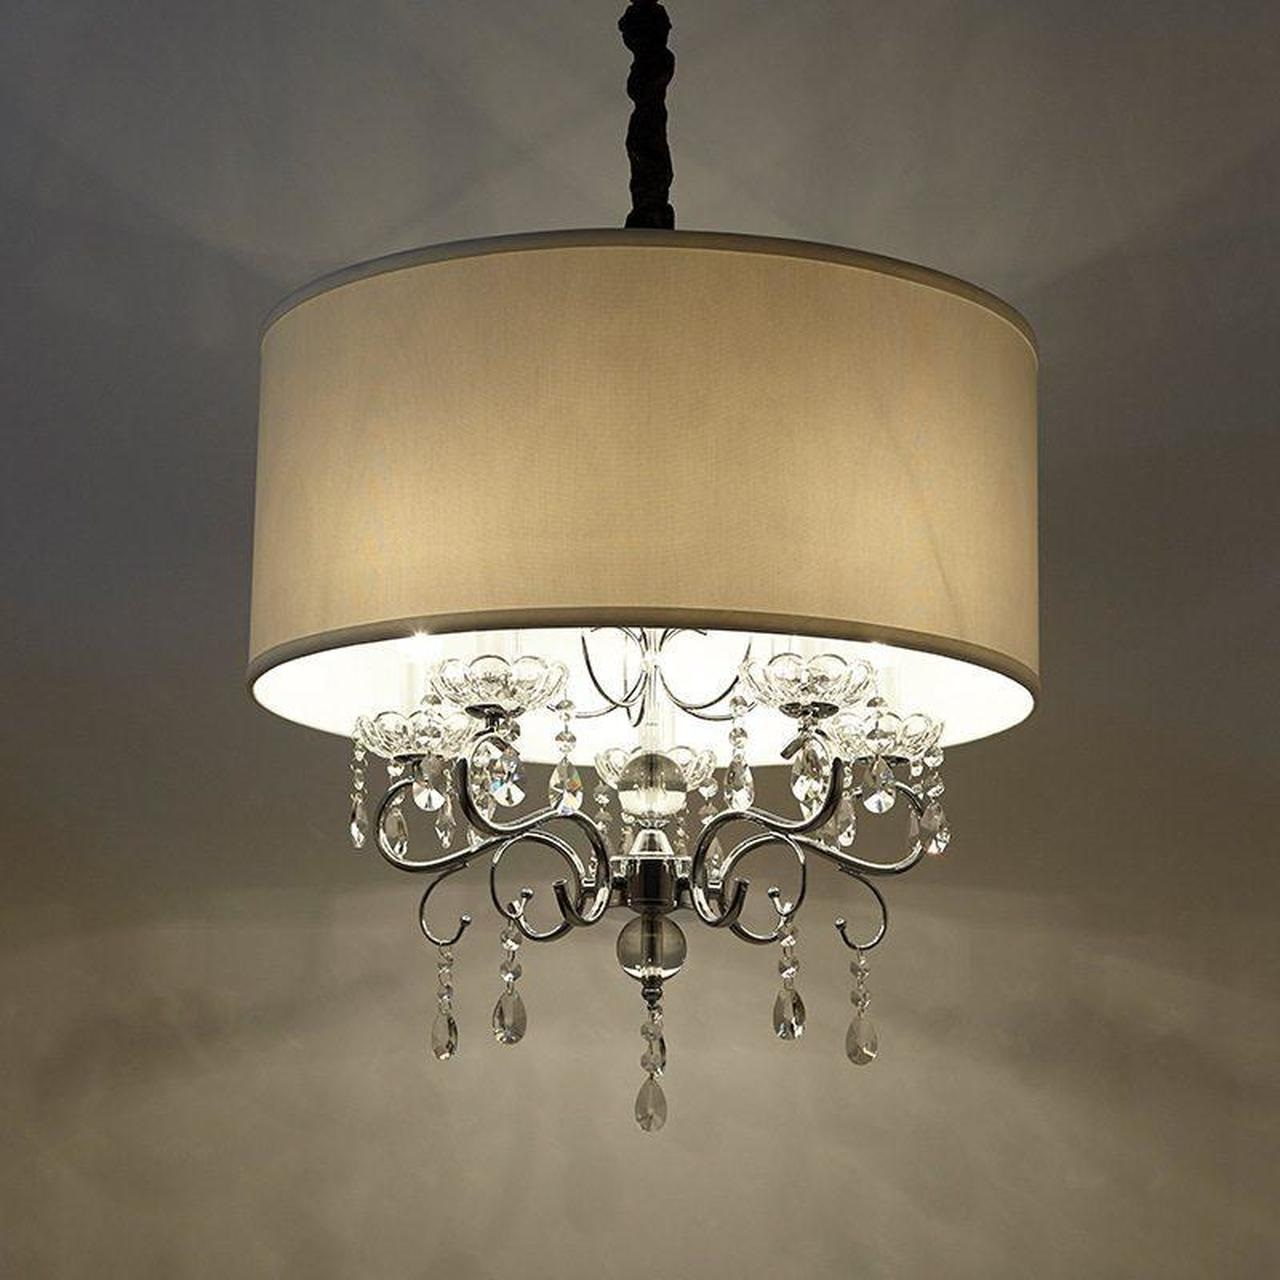 5 Light k9 Crystal White Drum Shade Hanging Chandelier Pendant Light